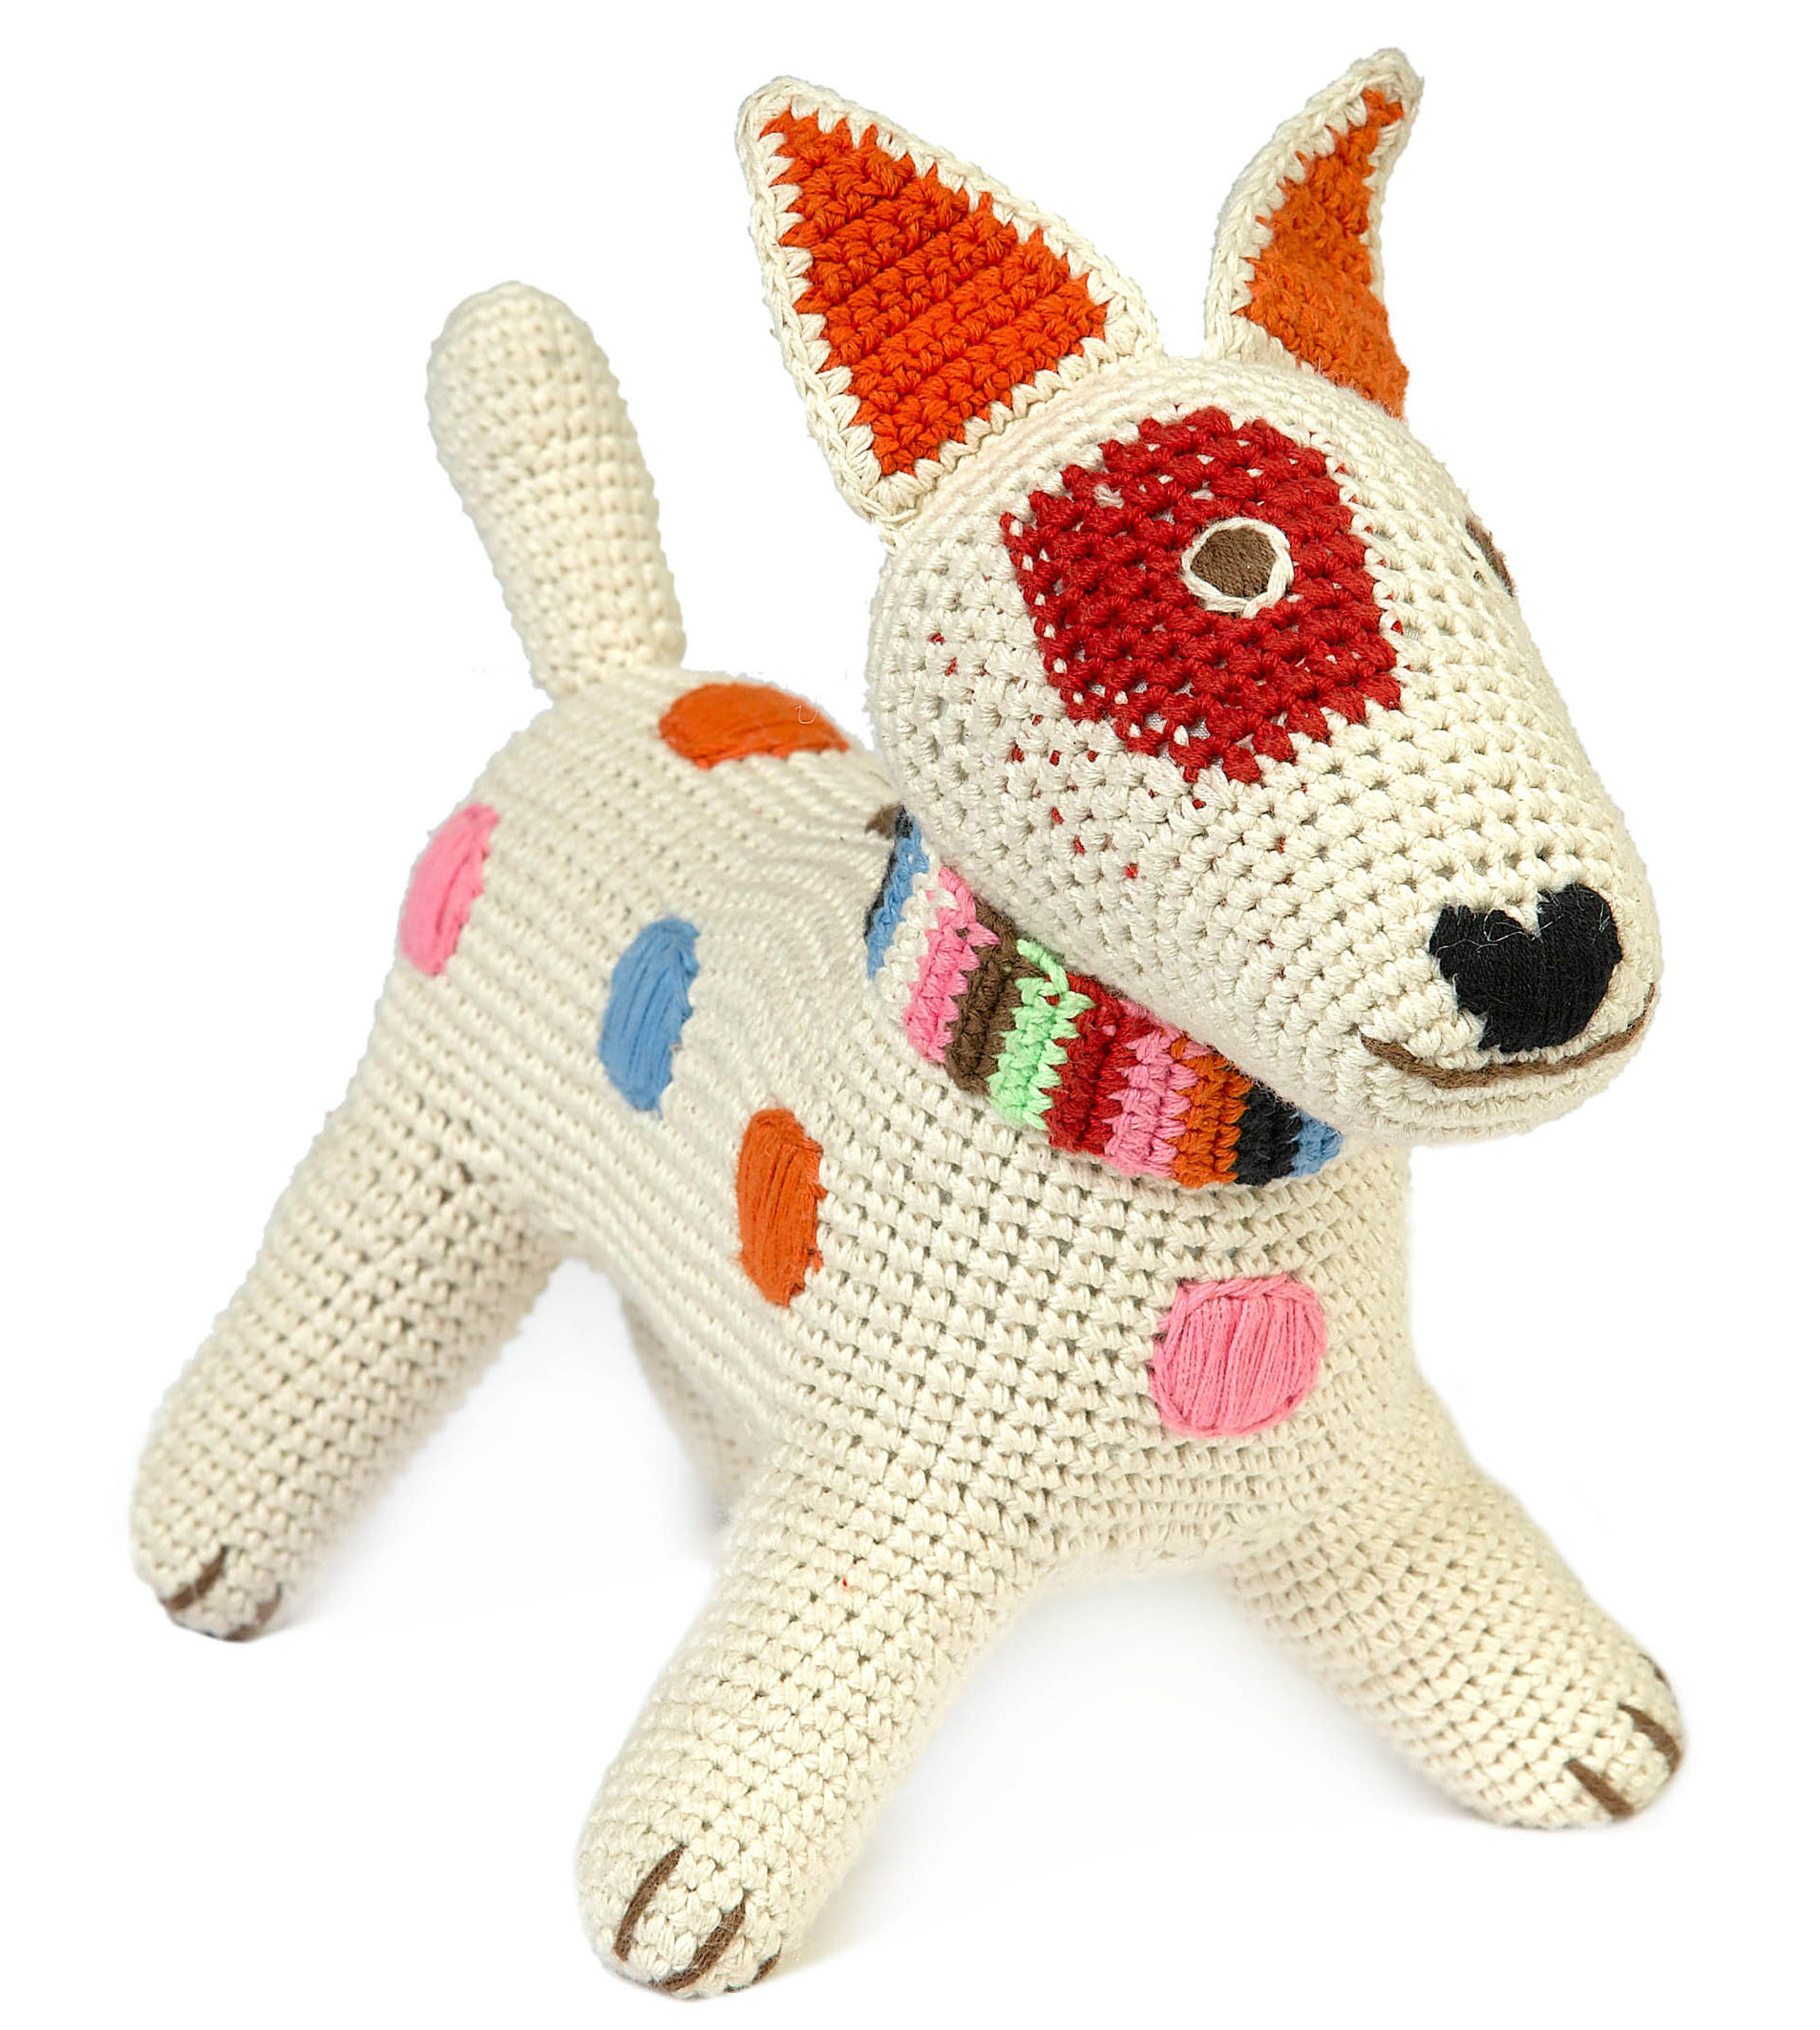 fox terrier cuddly toy crochet cuddly toy nature by anne. Black Bedroom Furniture Sets. Home Design Ideas